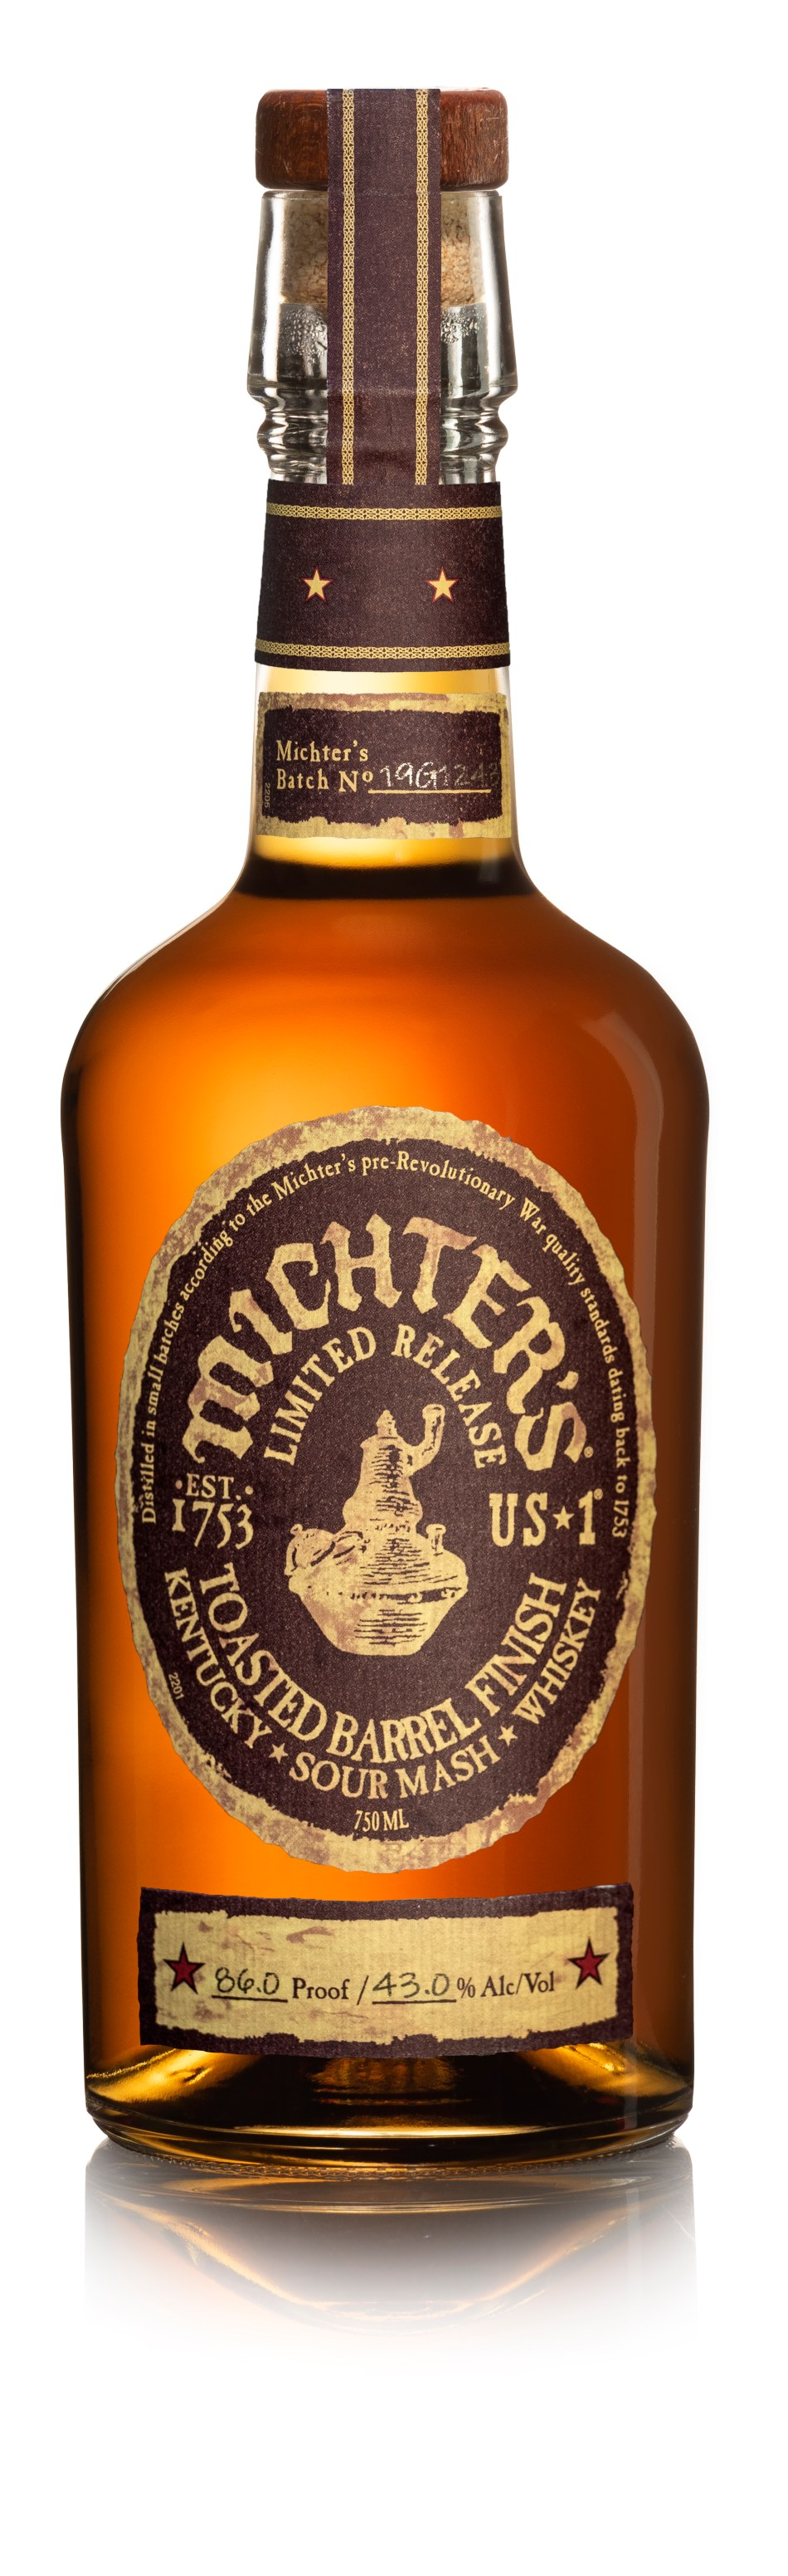 Michter's US1 Limited Release Toasted Sour Mash